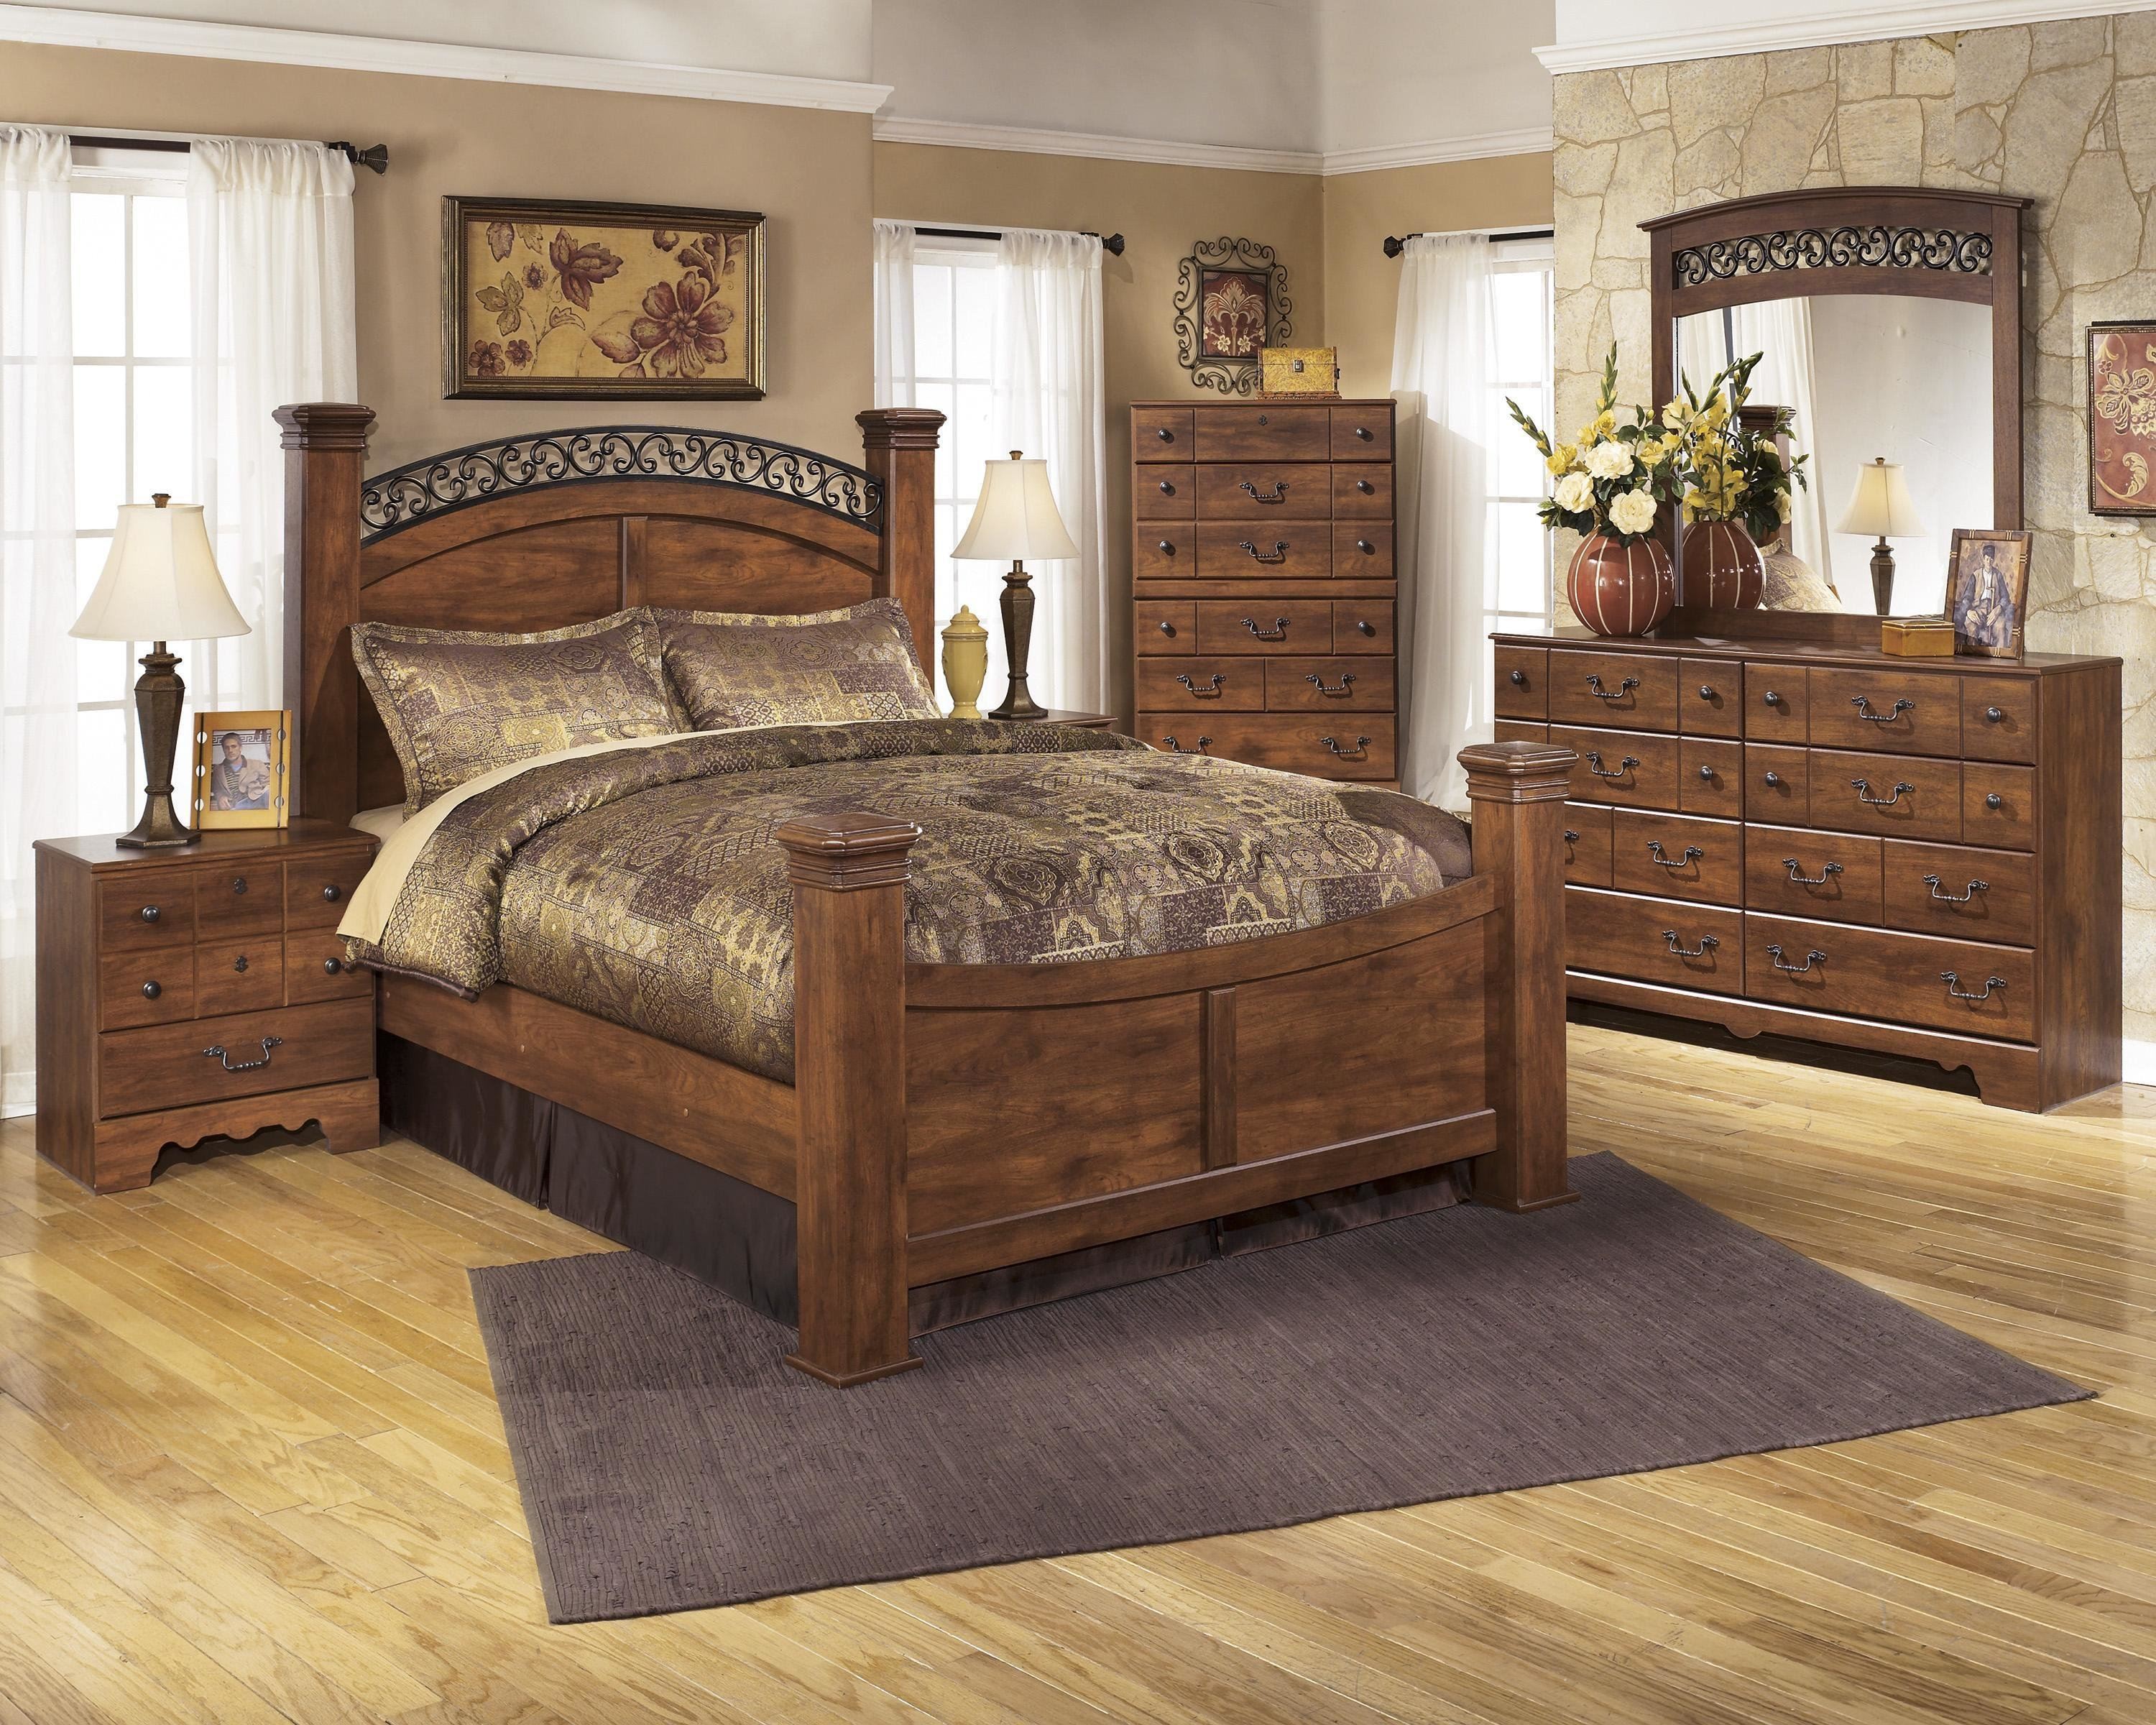 Best Signature Design By Ashley Timberline B258 Q Bedroom Group 3 No Chest Queen Bedroom Group 4Pc With Pictures